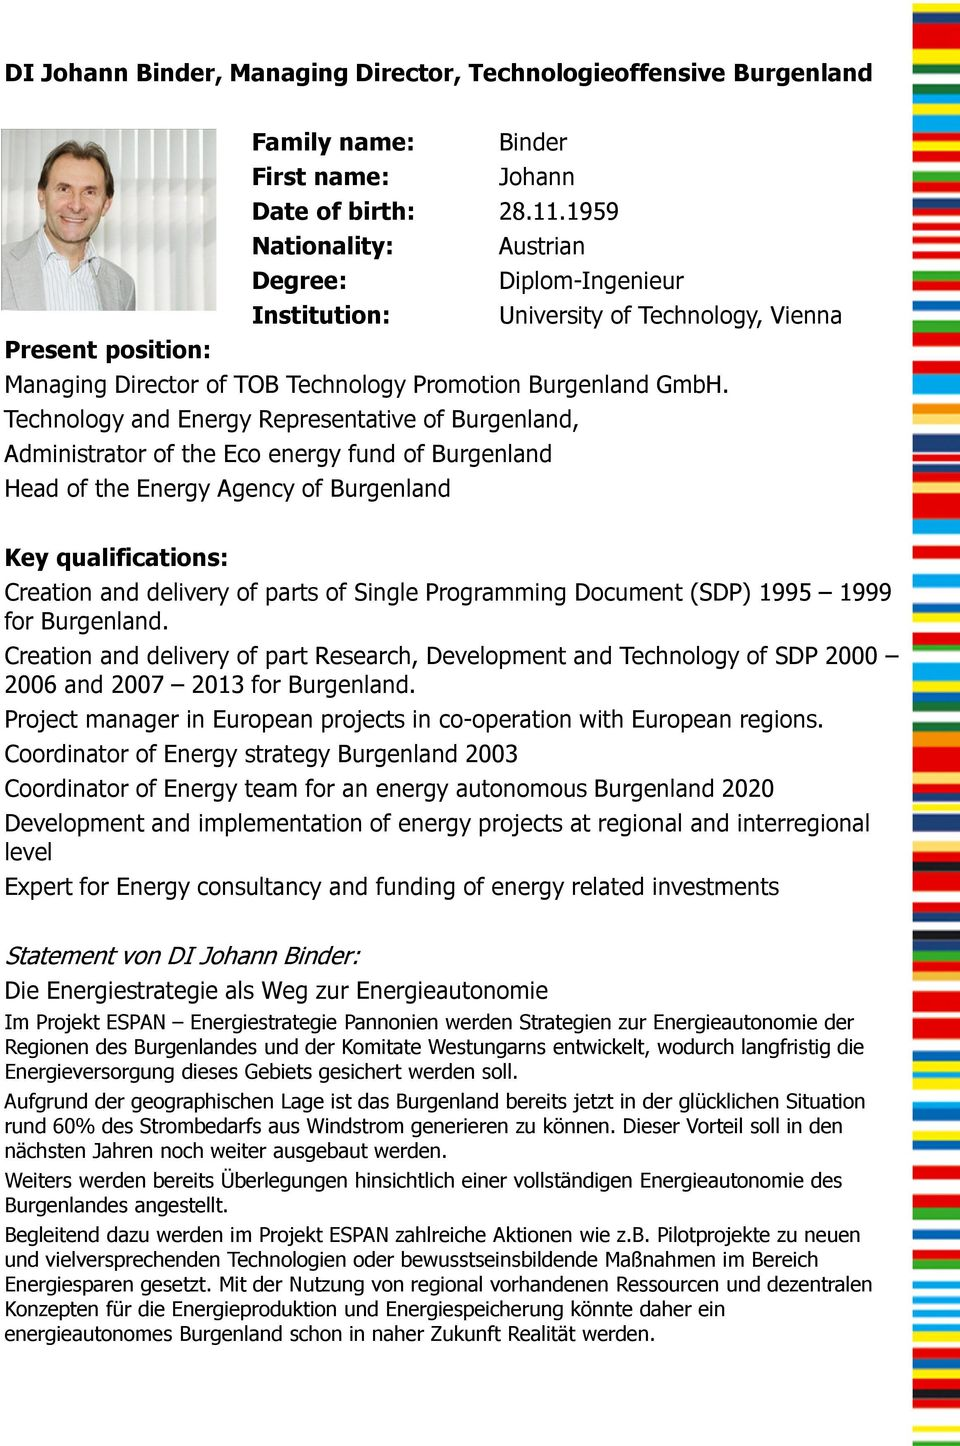 Technology and Energy Representative of Burgenland, Administrator of the Eco energy fund of Burgenland Head of the Energy Agency of Burgenland Key qualifications: Creation and delivery of parts of